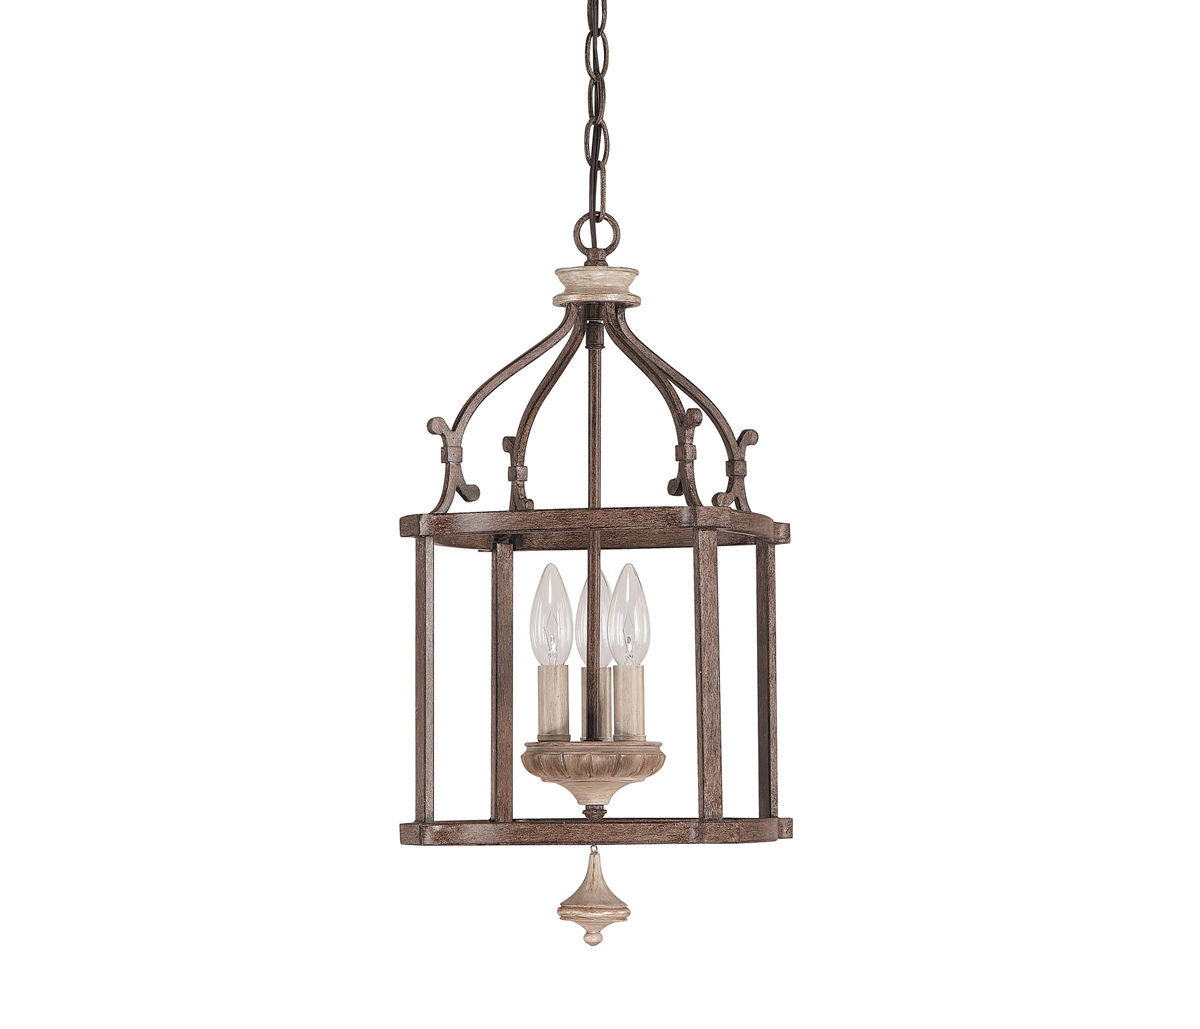 Small Foyer Pendant Lighting : Capital lighting chateau light foyer fixture